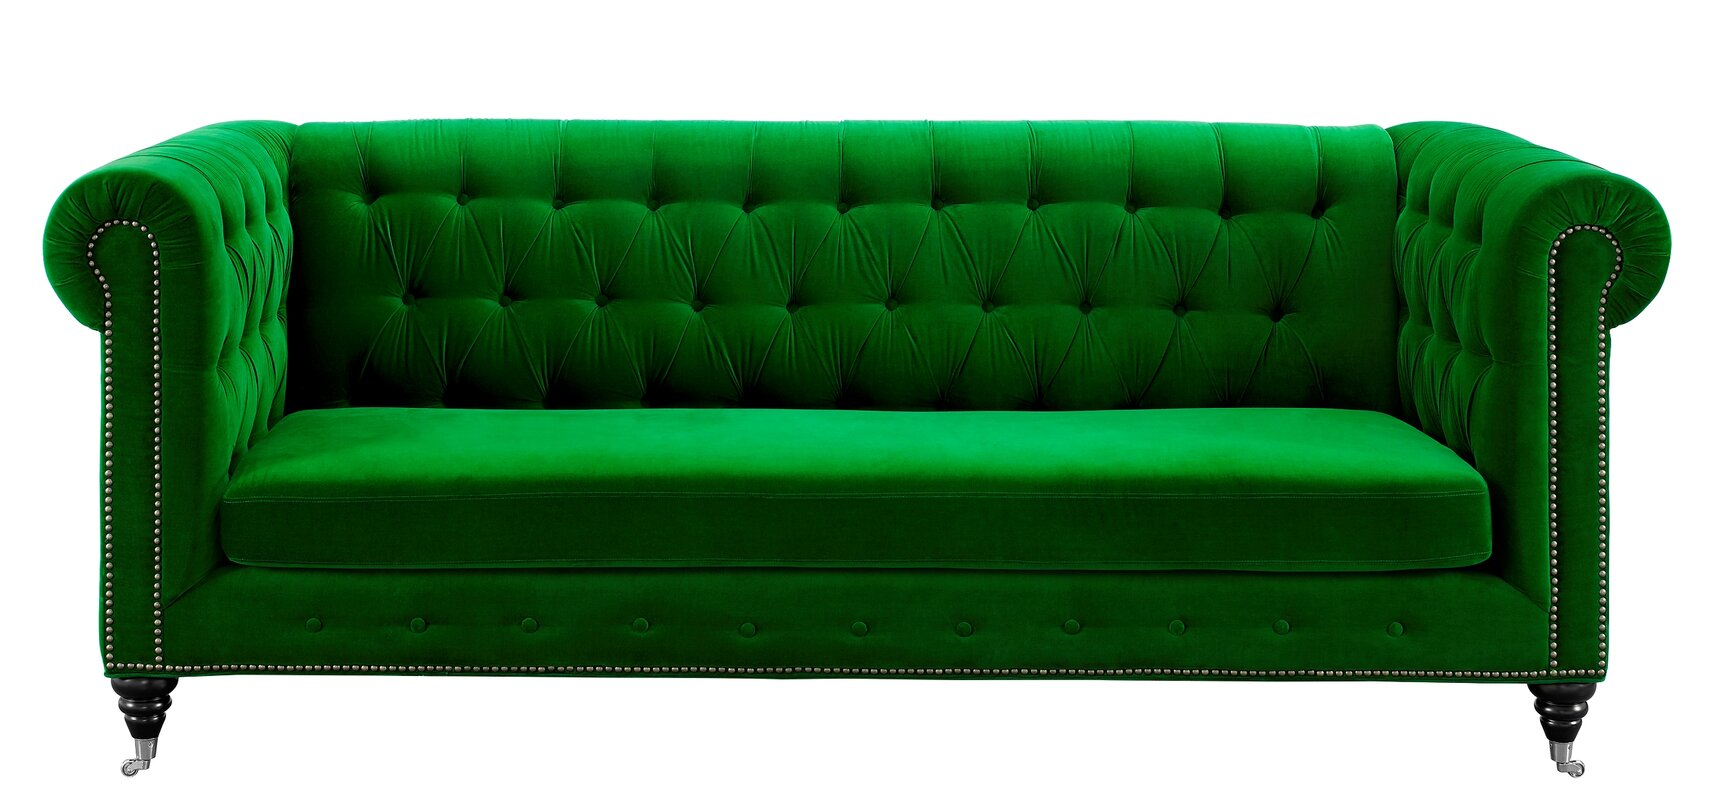 gertrudes chesterfield sofa - Chesterfield Couch